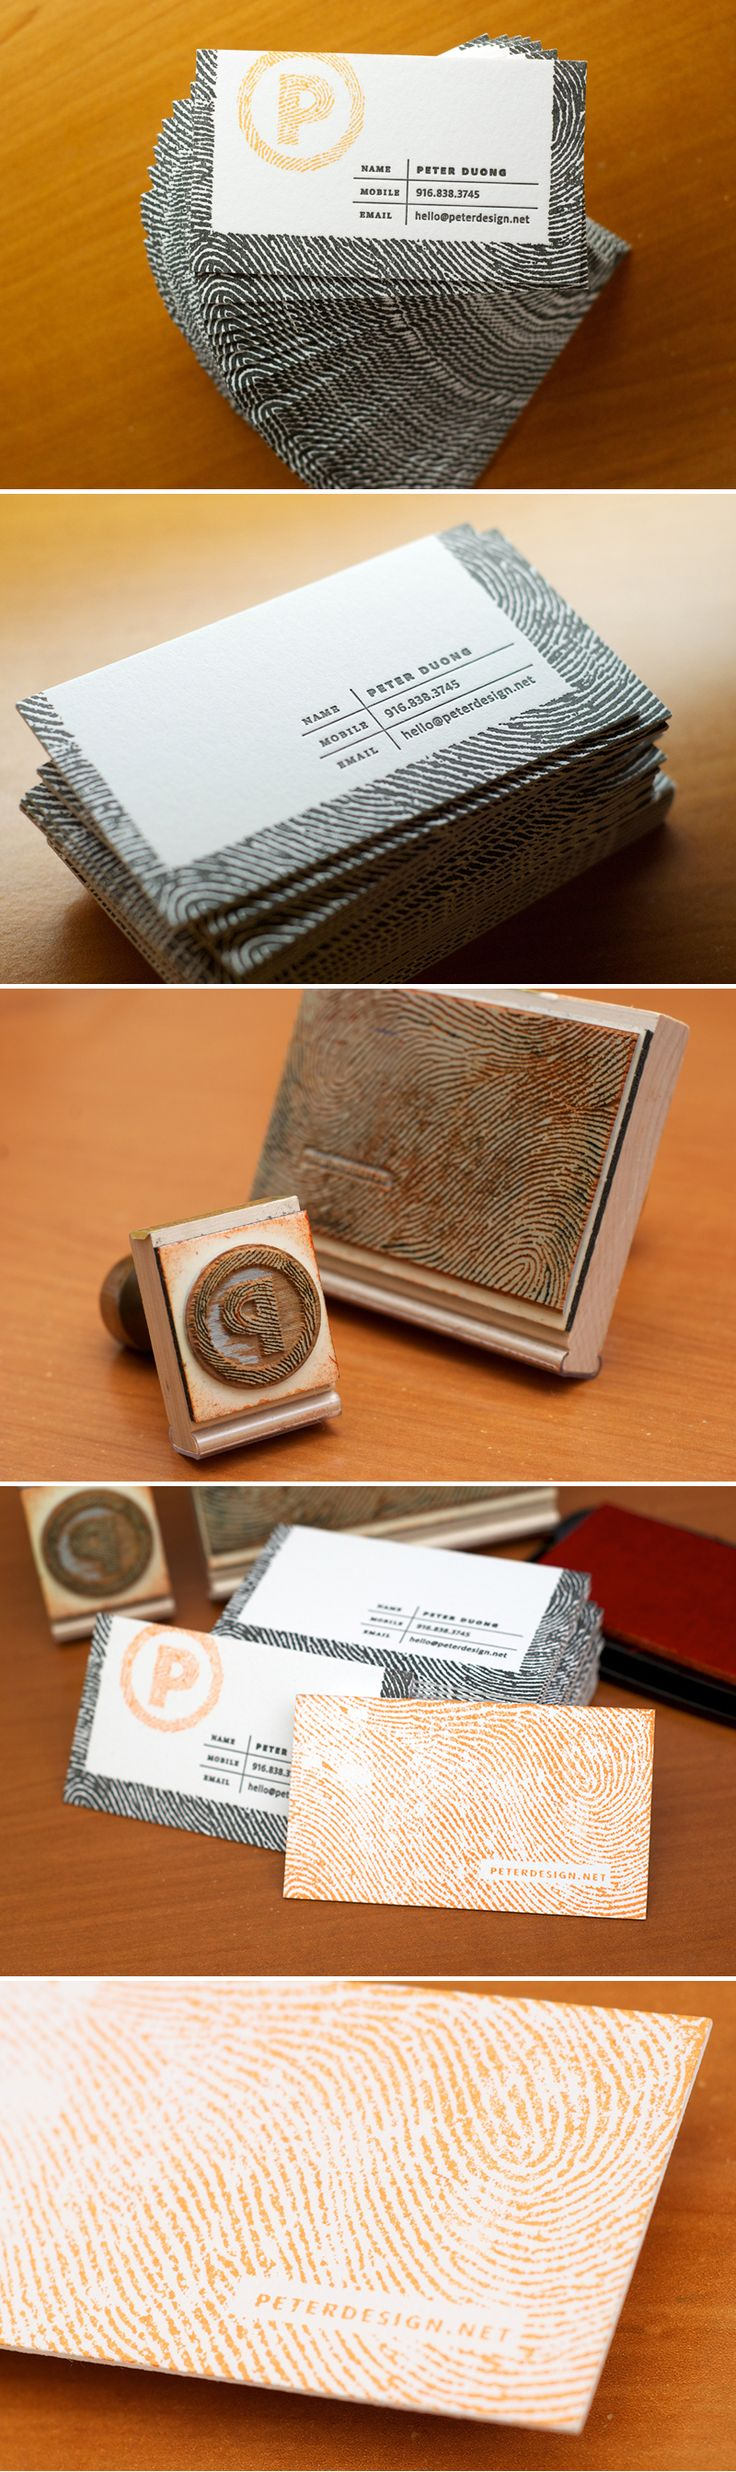 Peter Duong Letterpress + Stamp Business Cards - Business Cards - Creattica